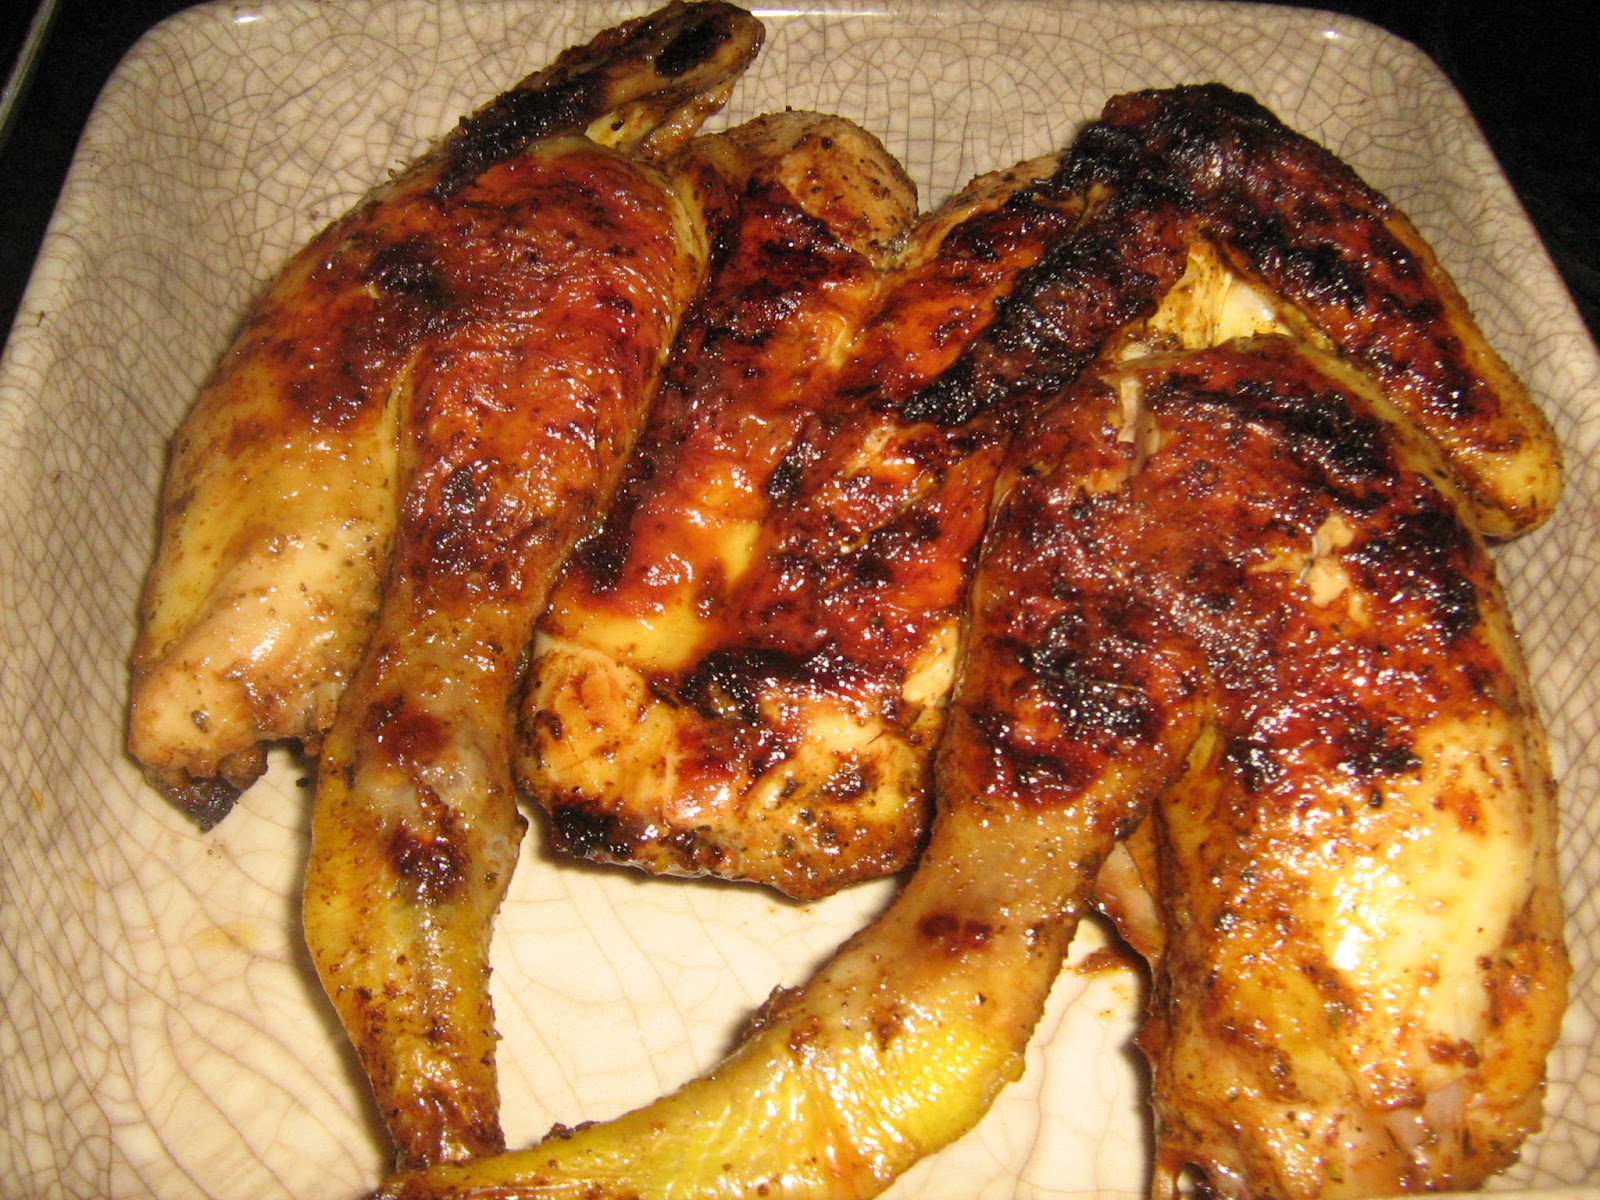 Lam bassa 39 a poulet grille aux vin rose grilled chicken parfumed with rose wine - Poulet grille au barbecue ...